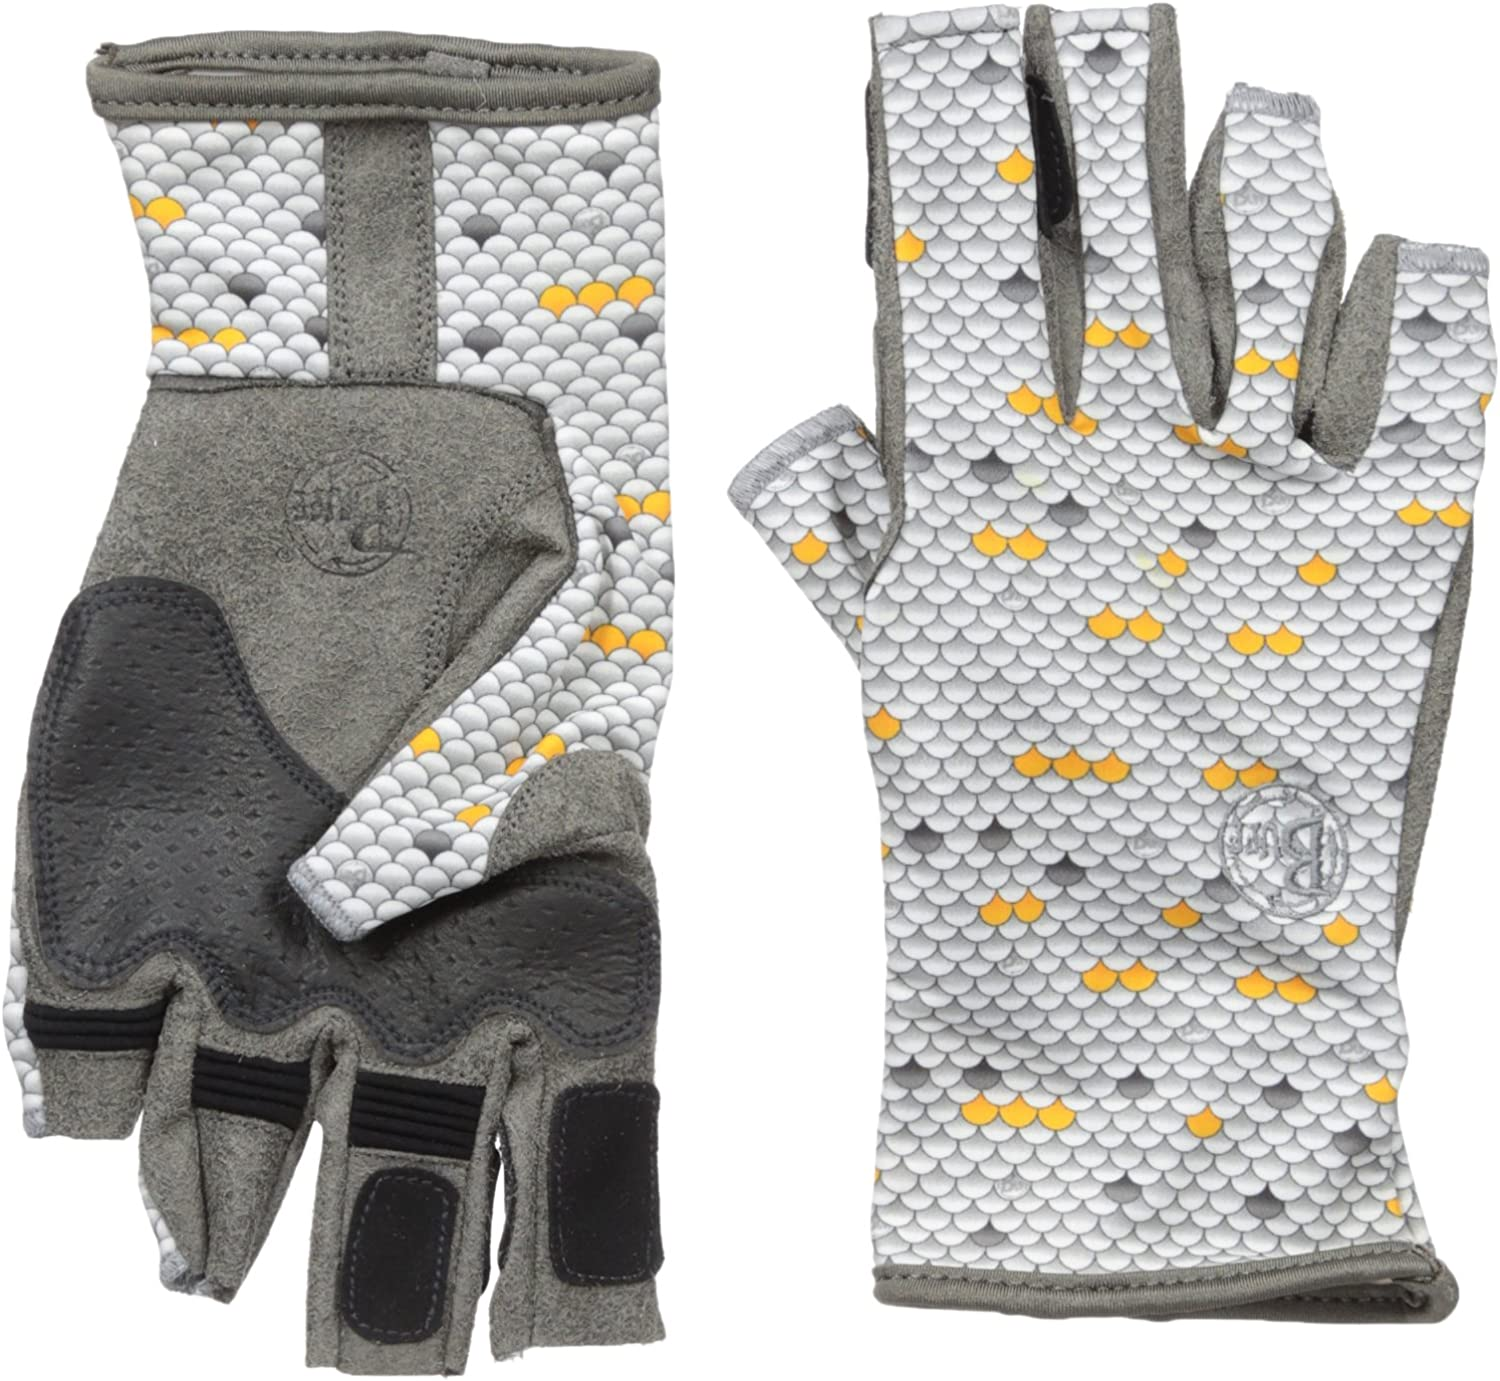 Fishing Gloves BUFF Solar Gloves Sun Protection for Fresh /& Saltwater Fishing